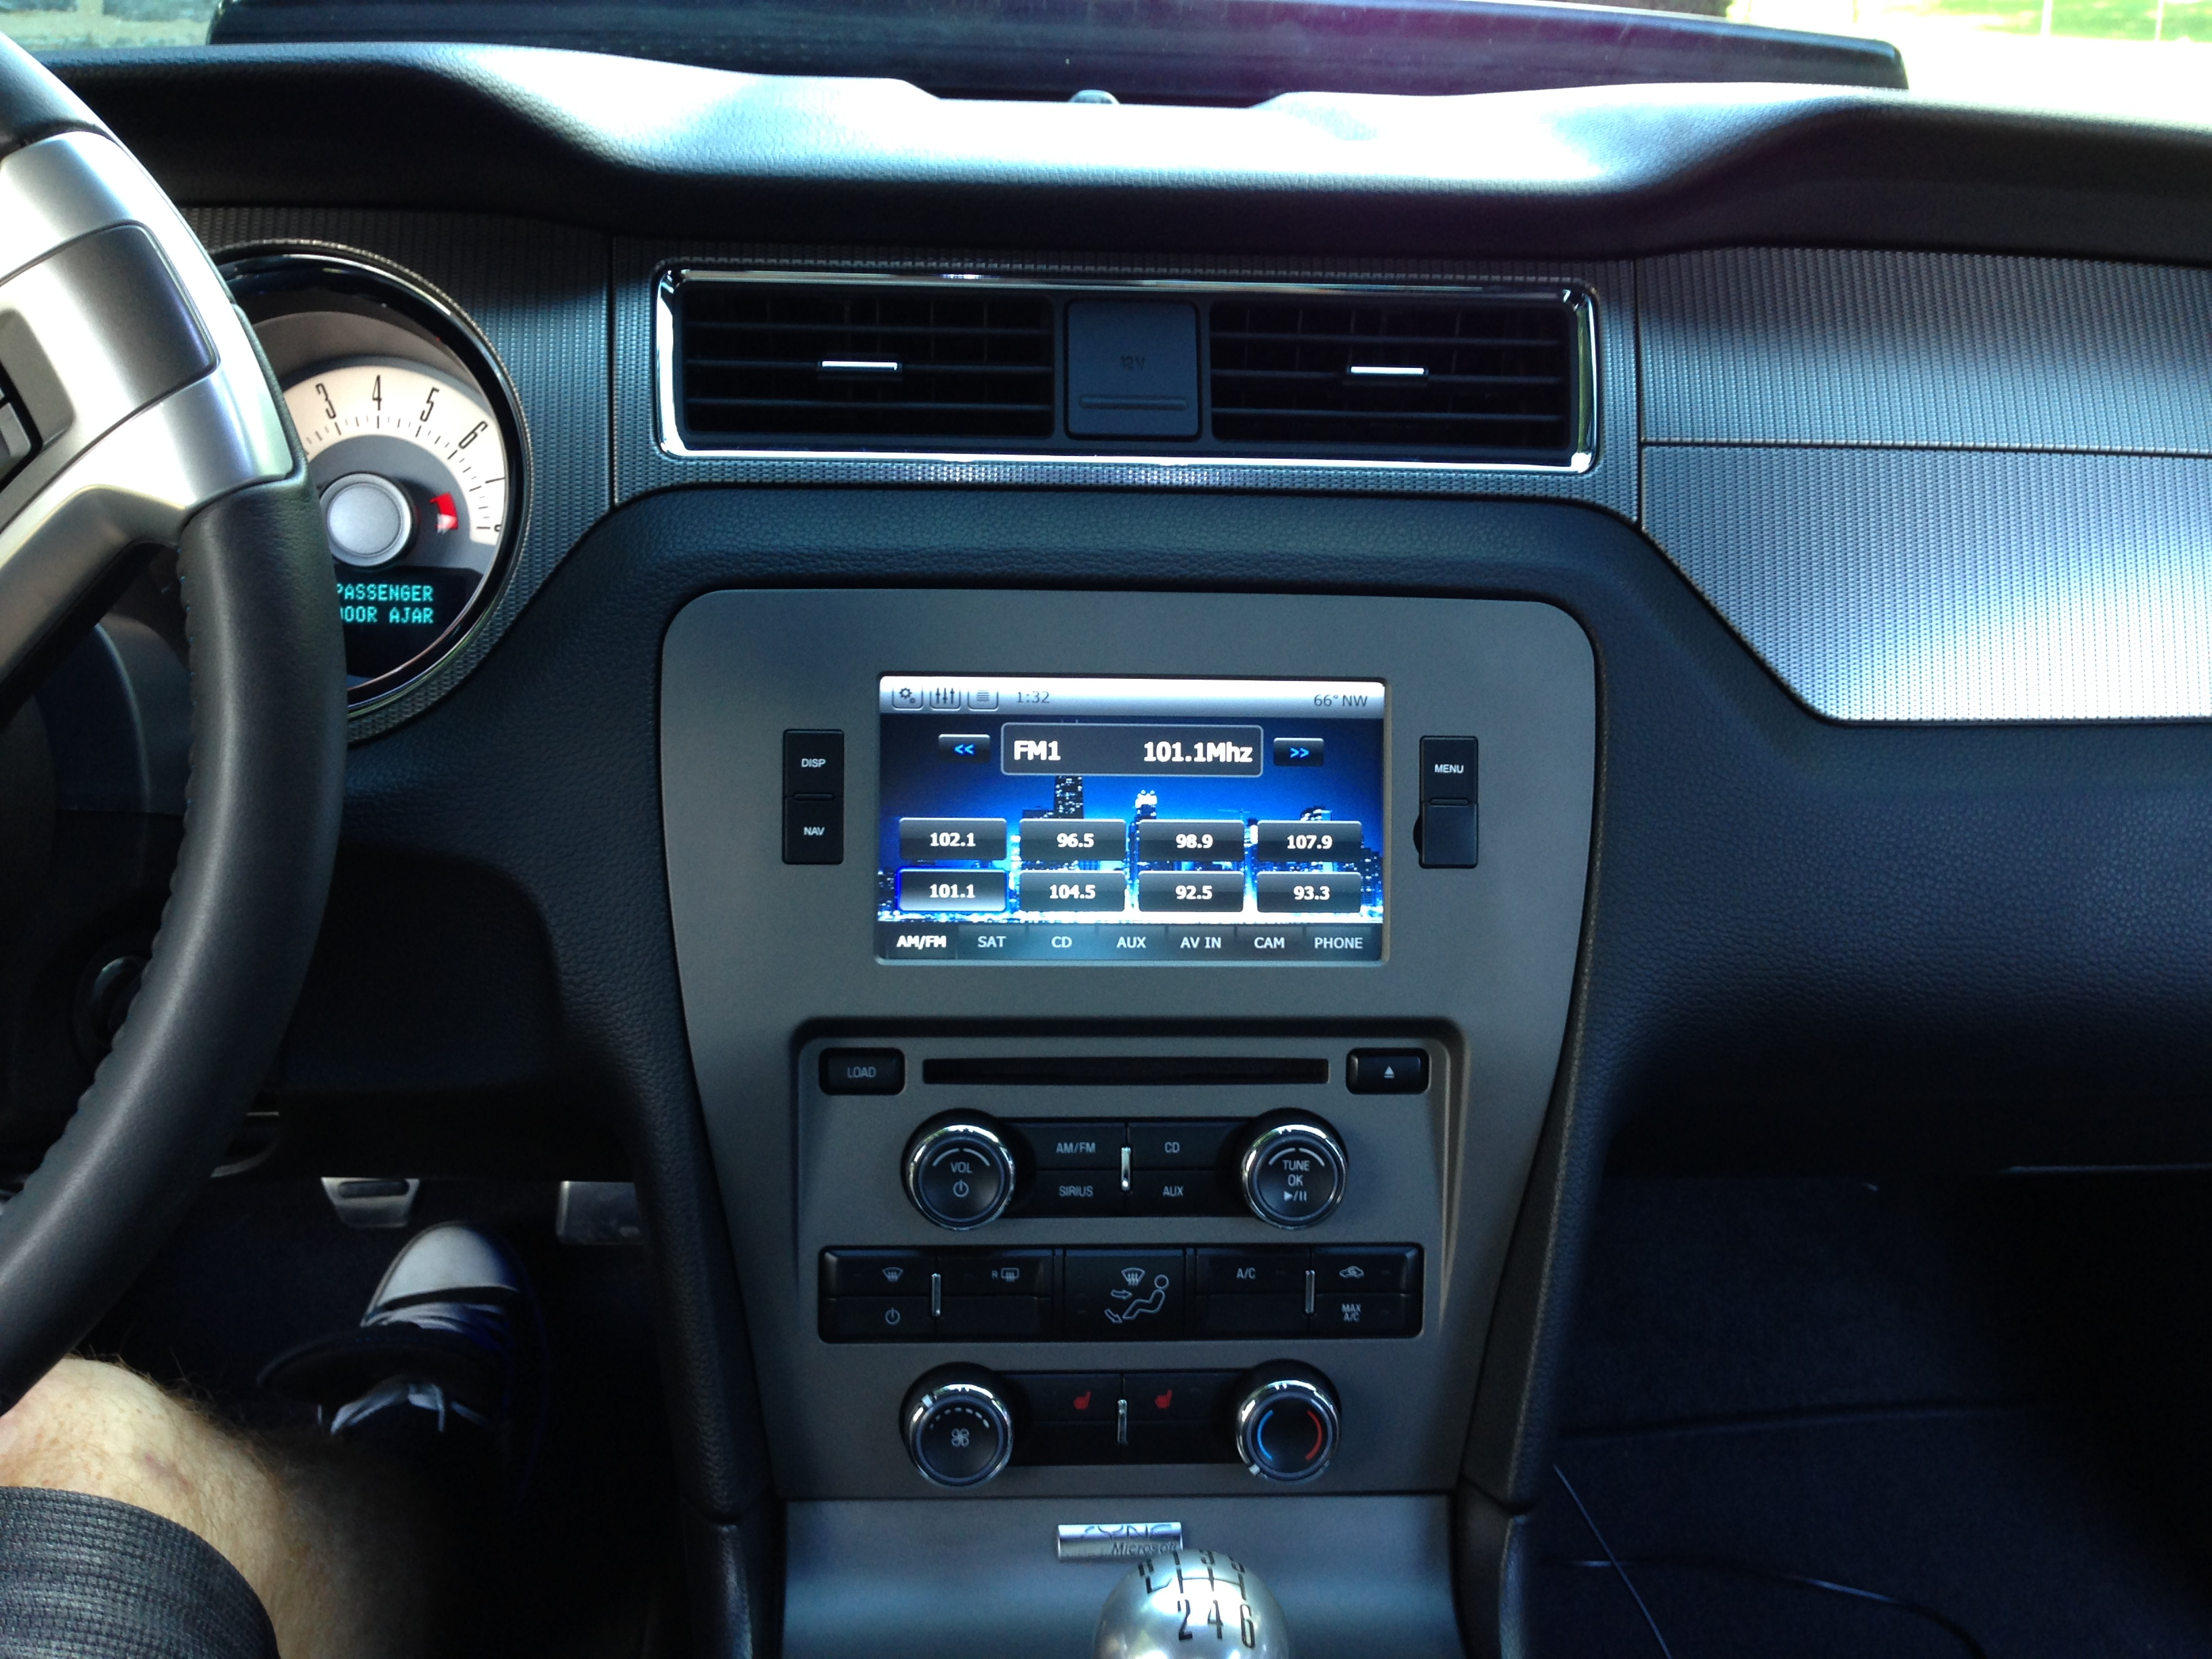 Features highlights 2011 mustang gt with raxiom navigation